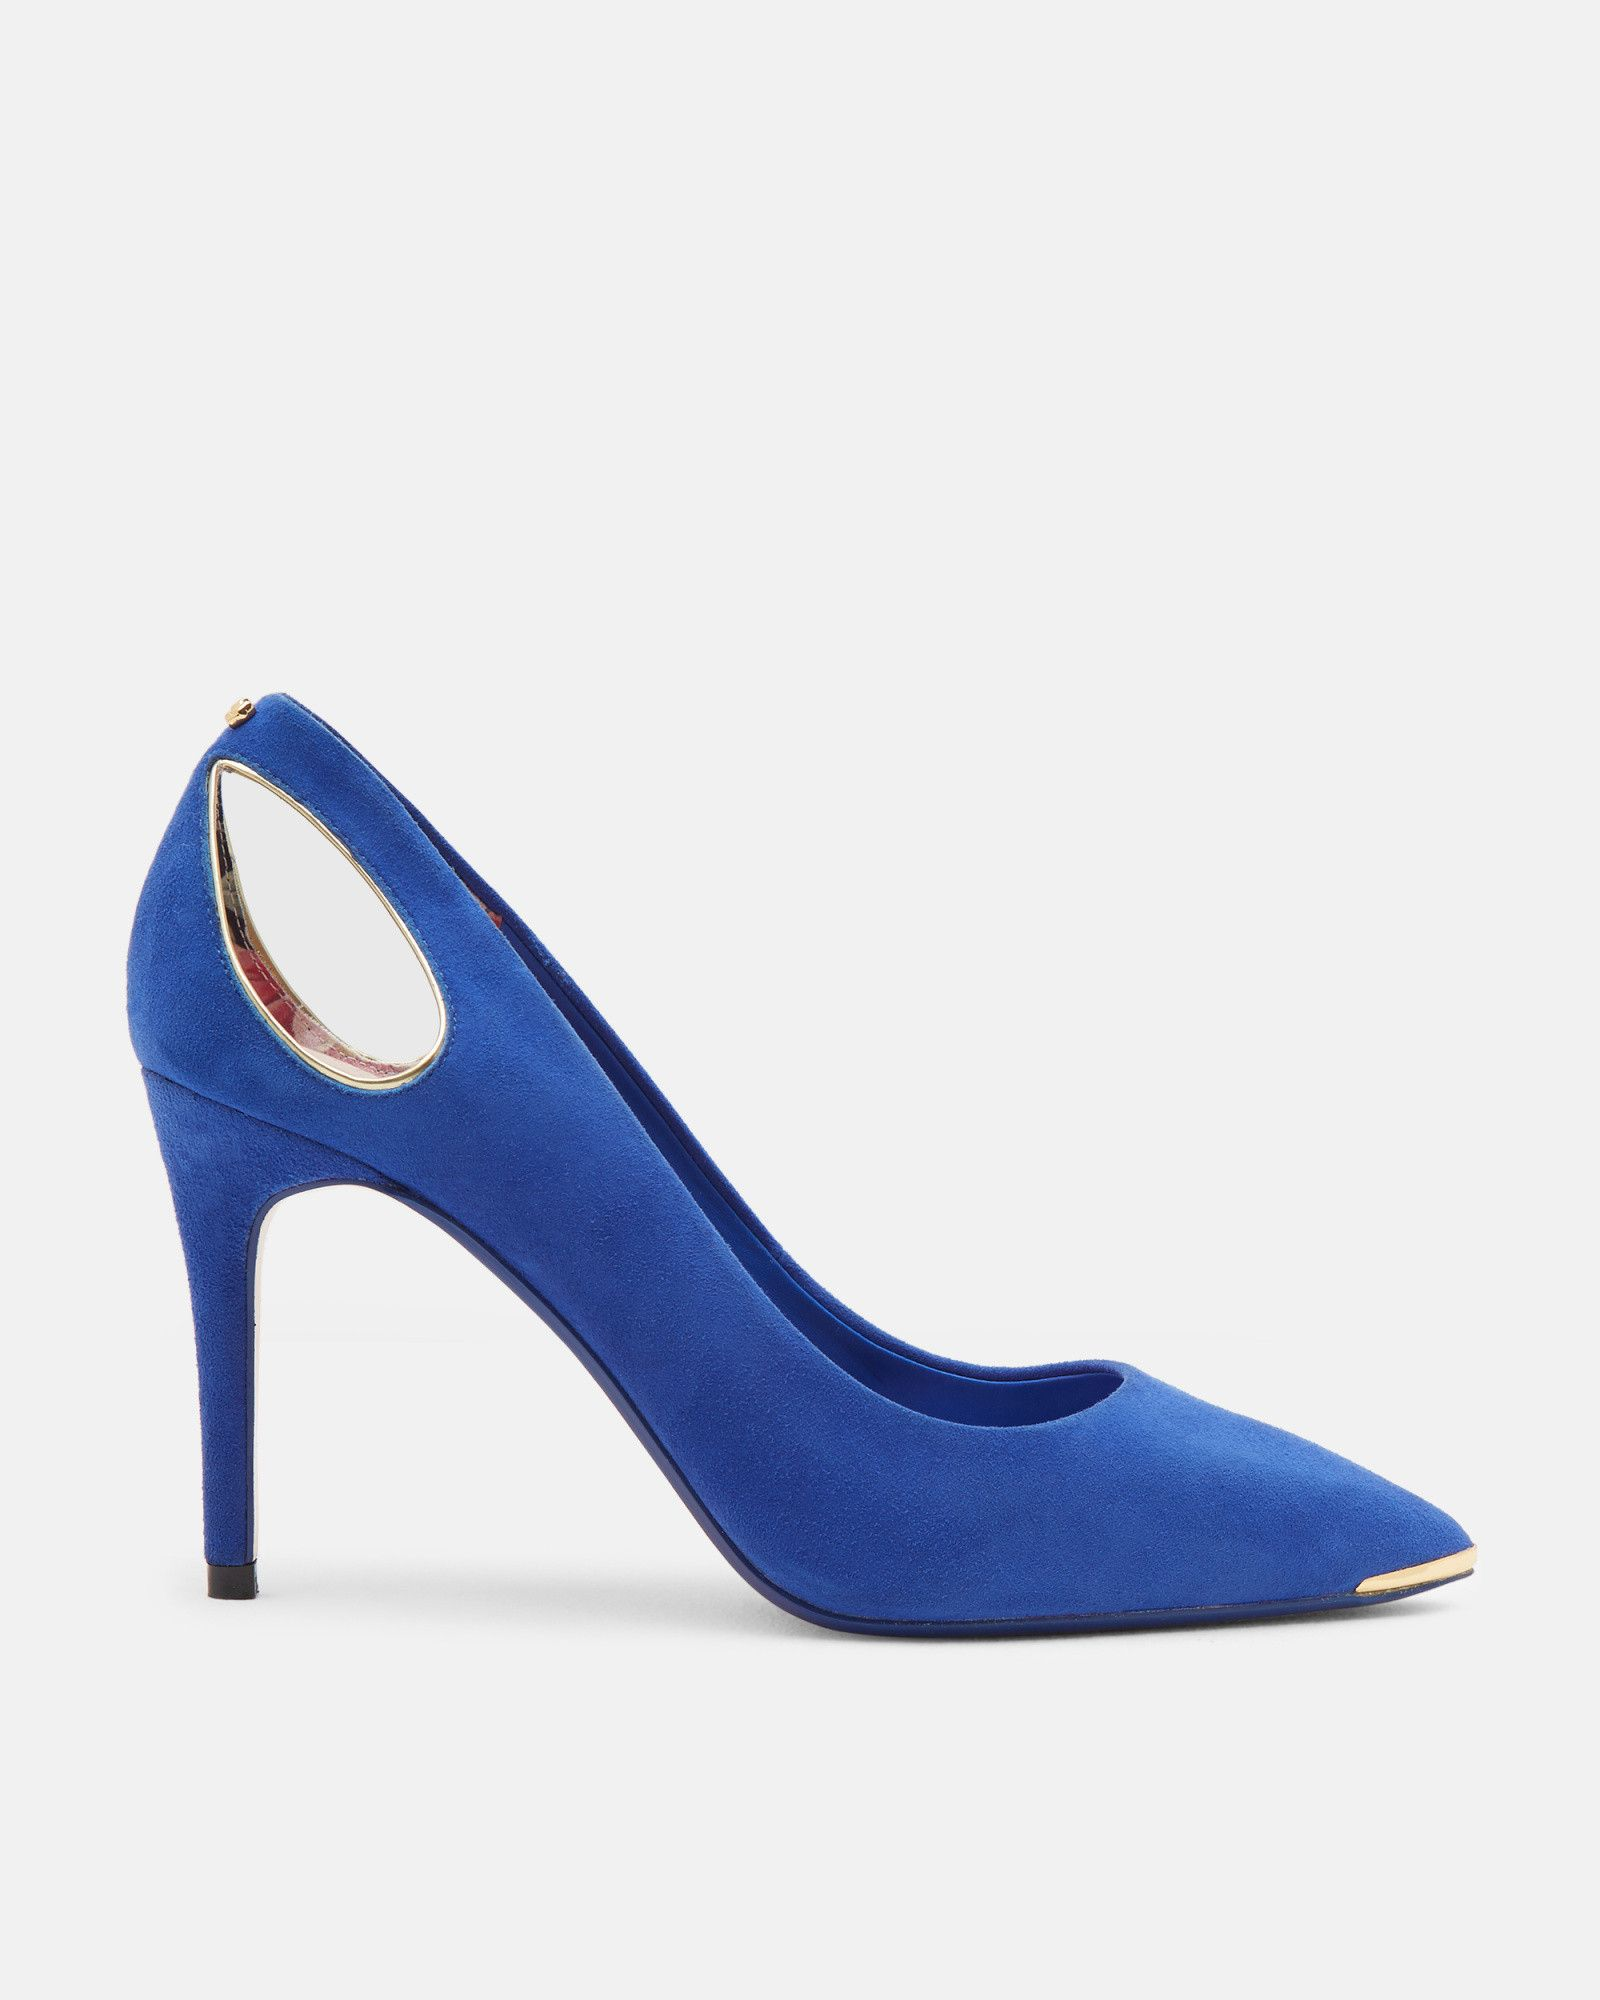 Cut-out Detail Courts Ted Baker kQiPtfg